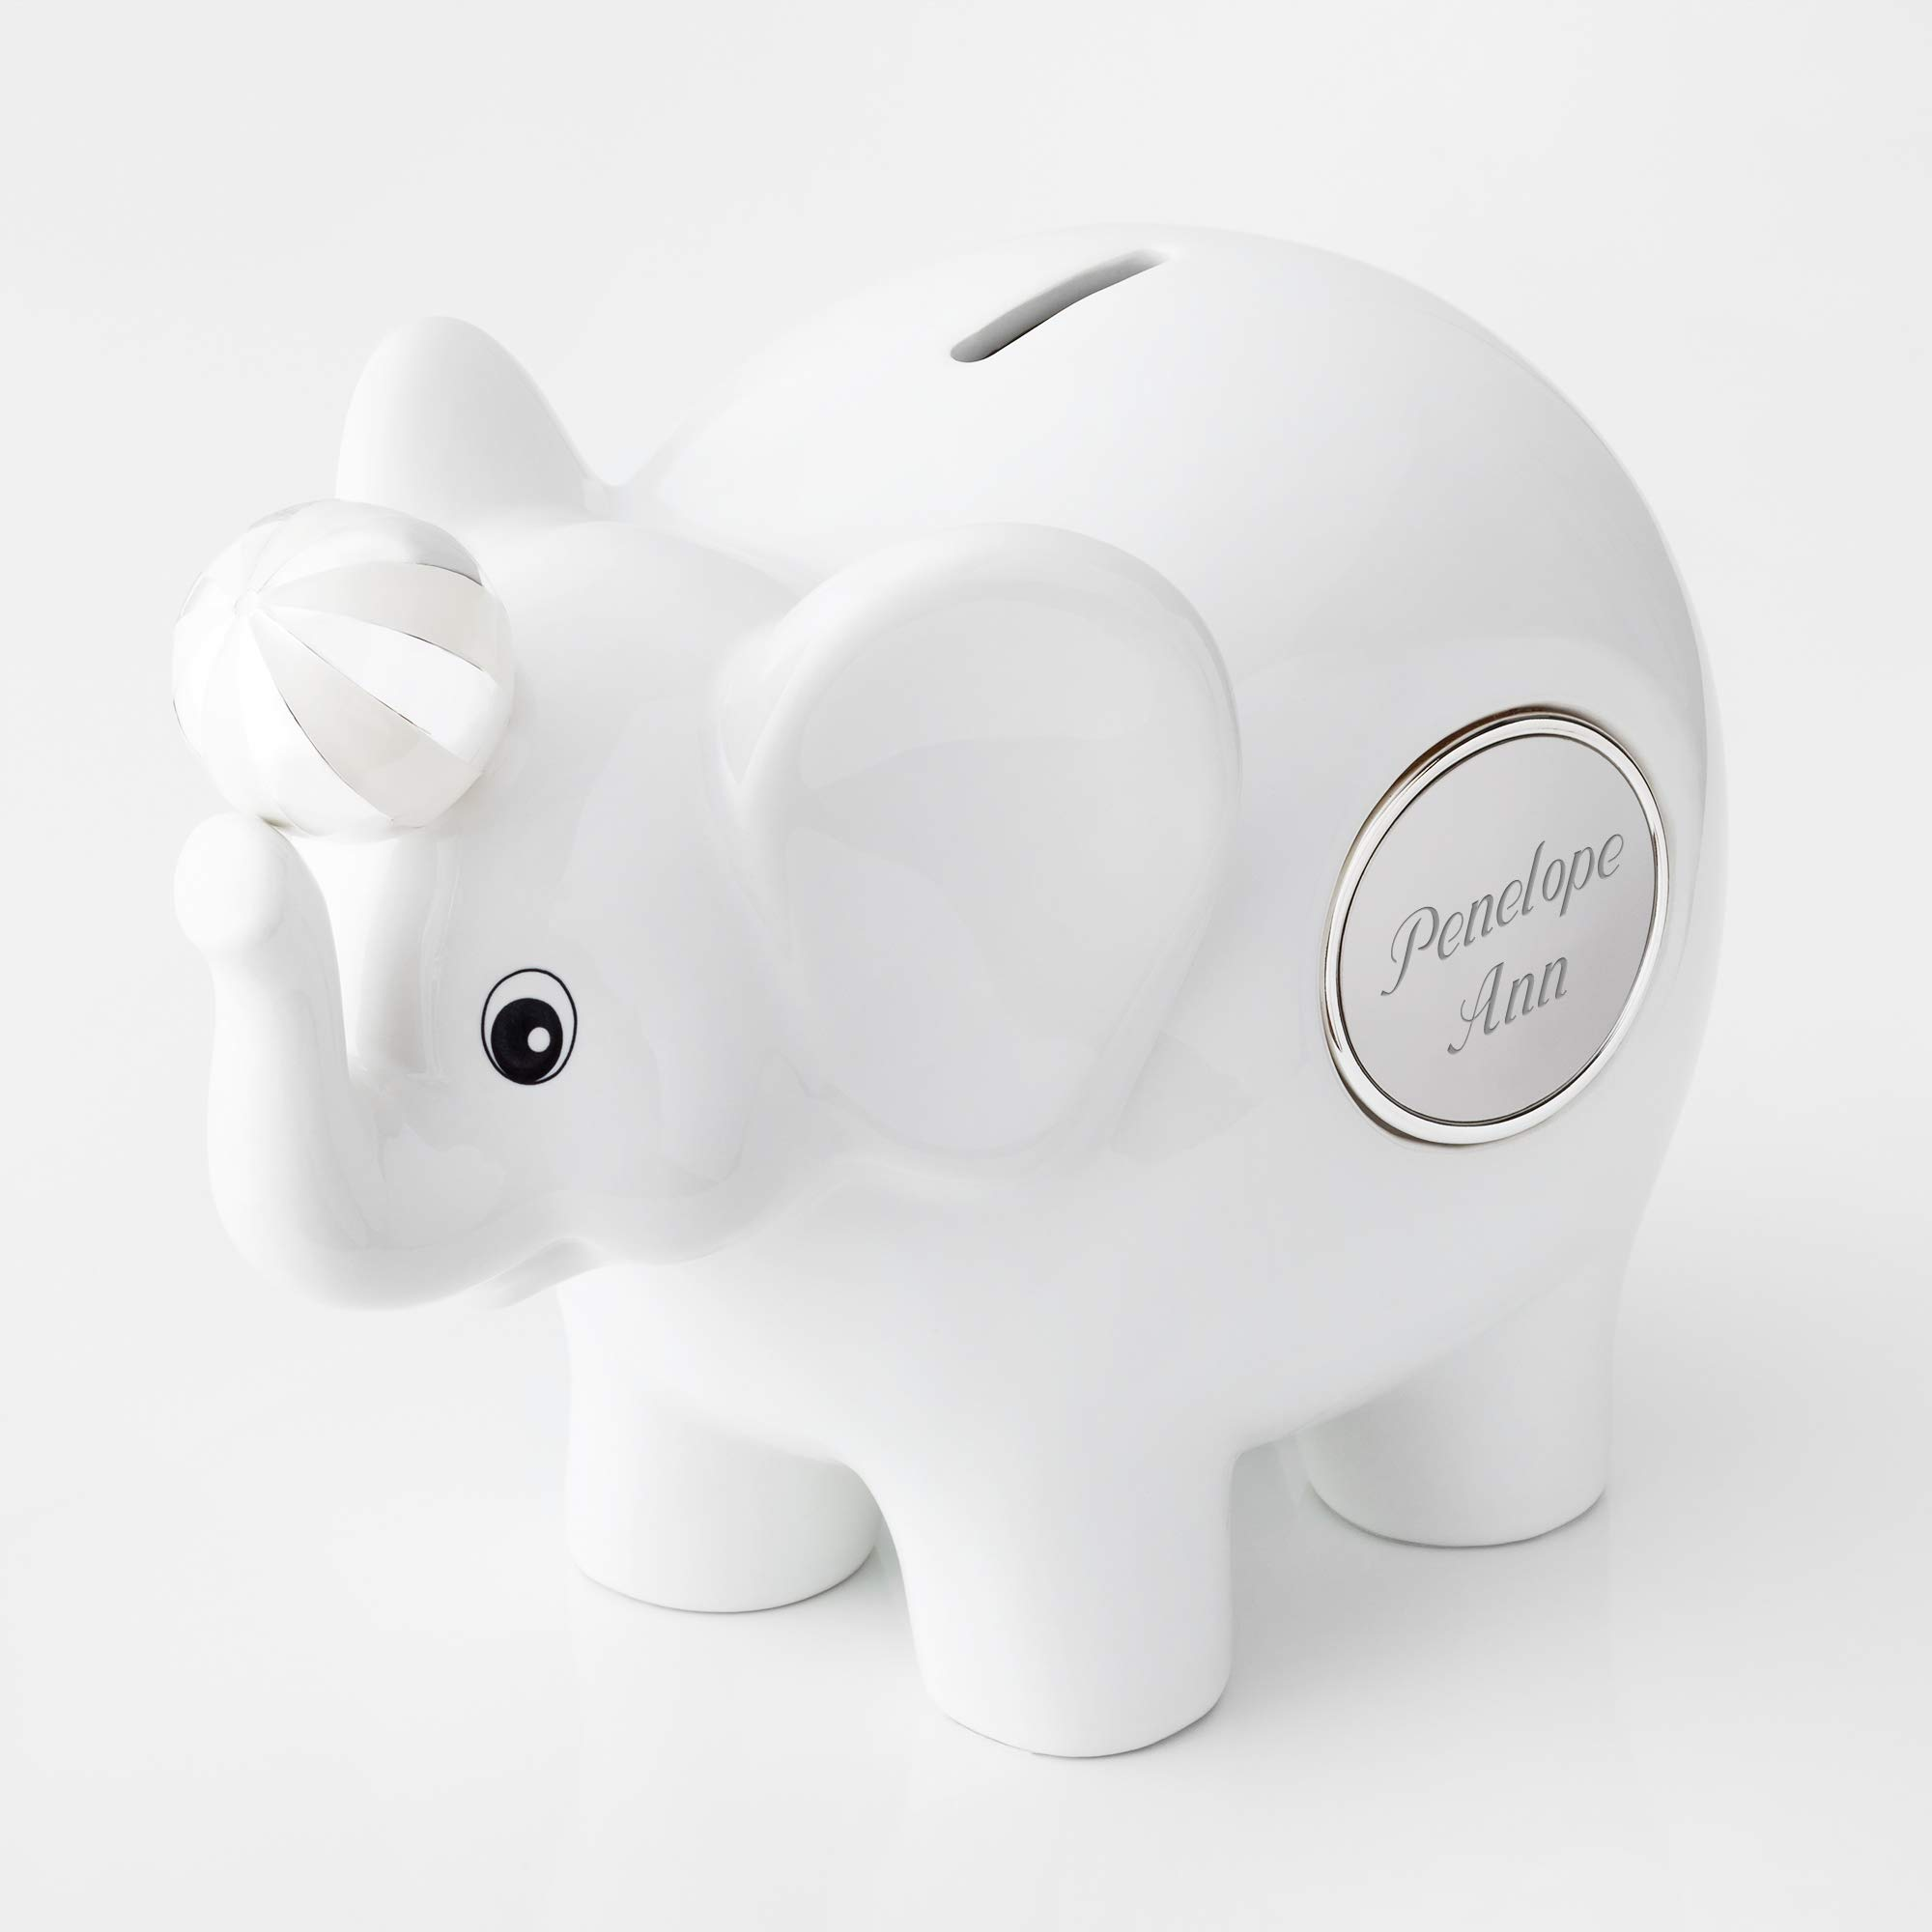 Things Remembered Personalized White Ceramic Elephant Bank, Toy Bank with Engraving Included by Things Remembered